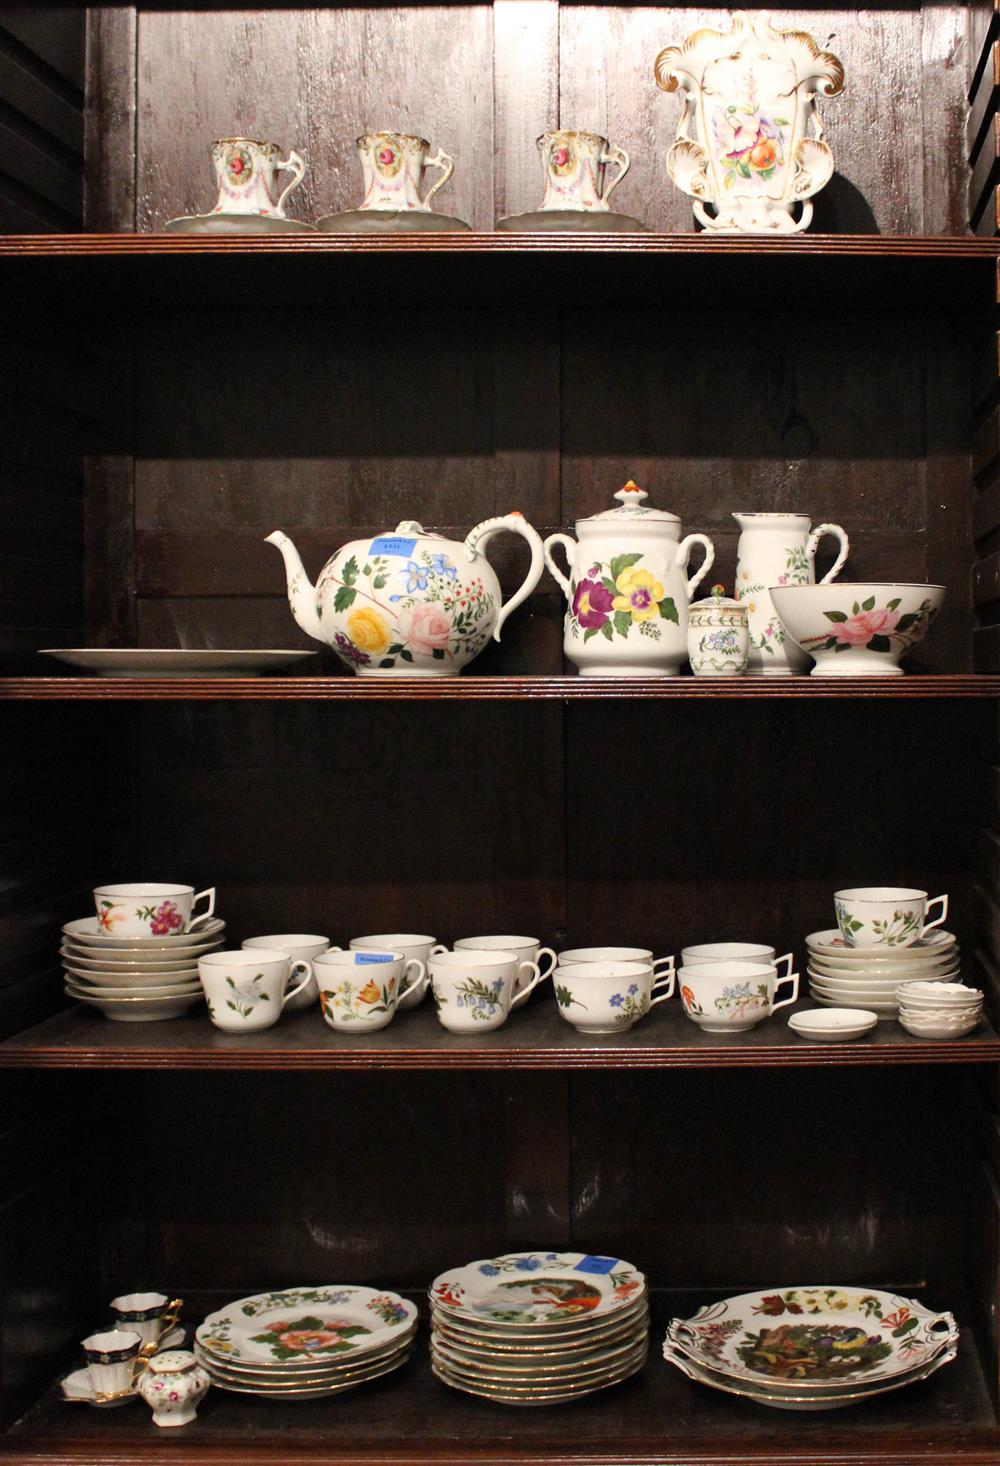 COLLECTION OF HANDPAINTED CERAMICS BY MARGARET